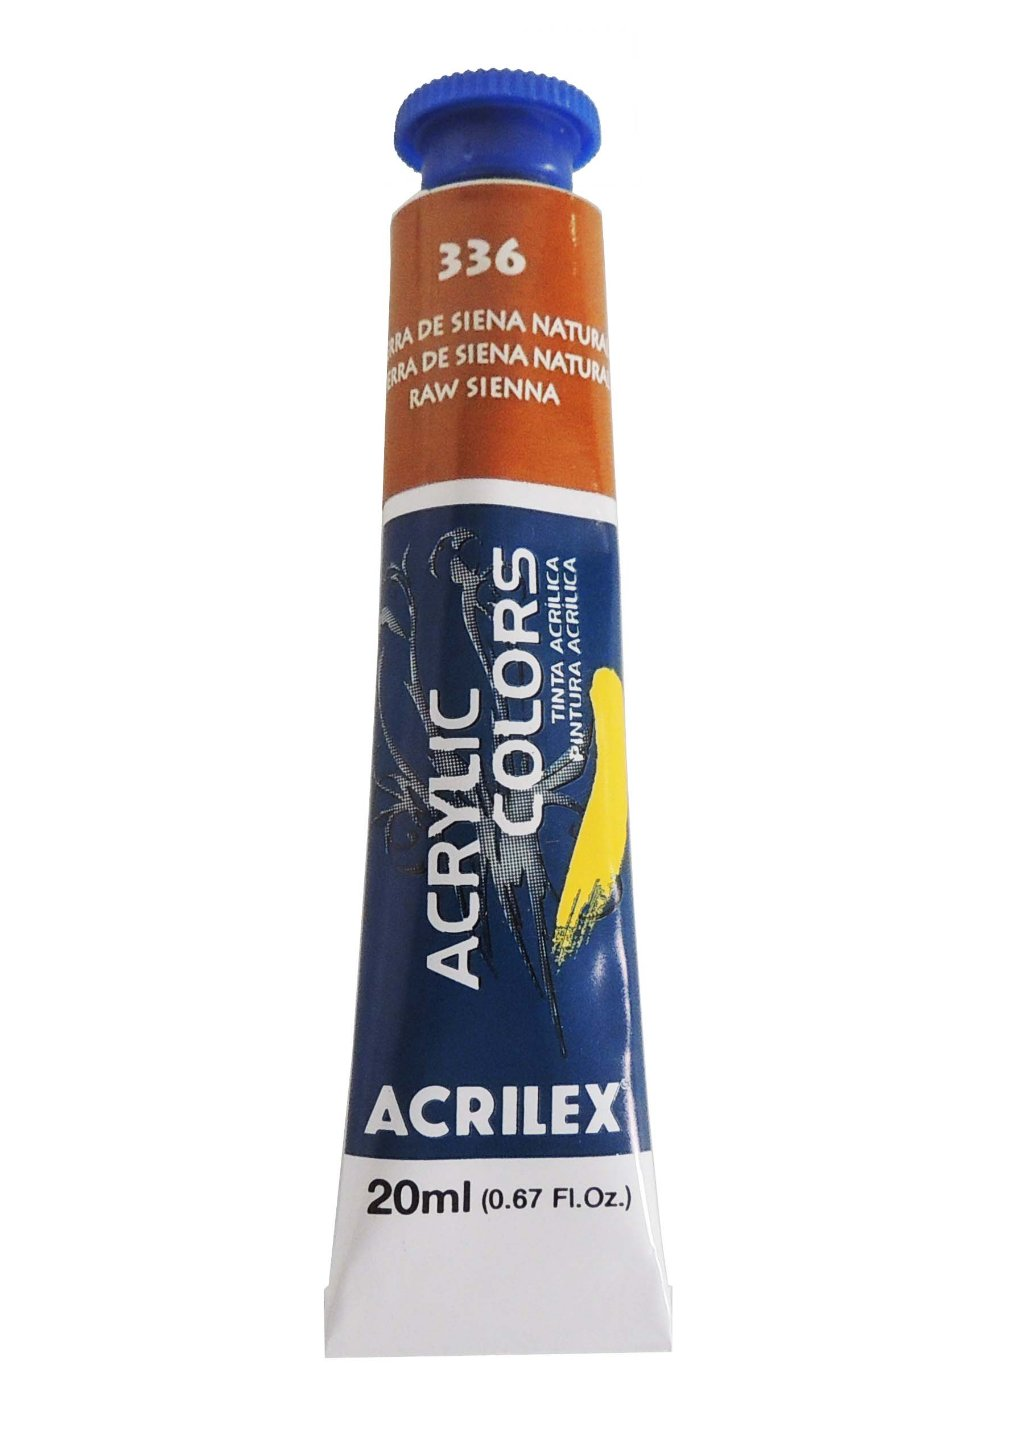 tinta-acrilica-20ml-336-terra-siena-natural